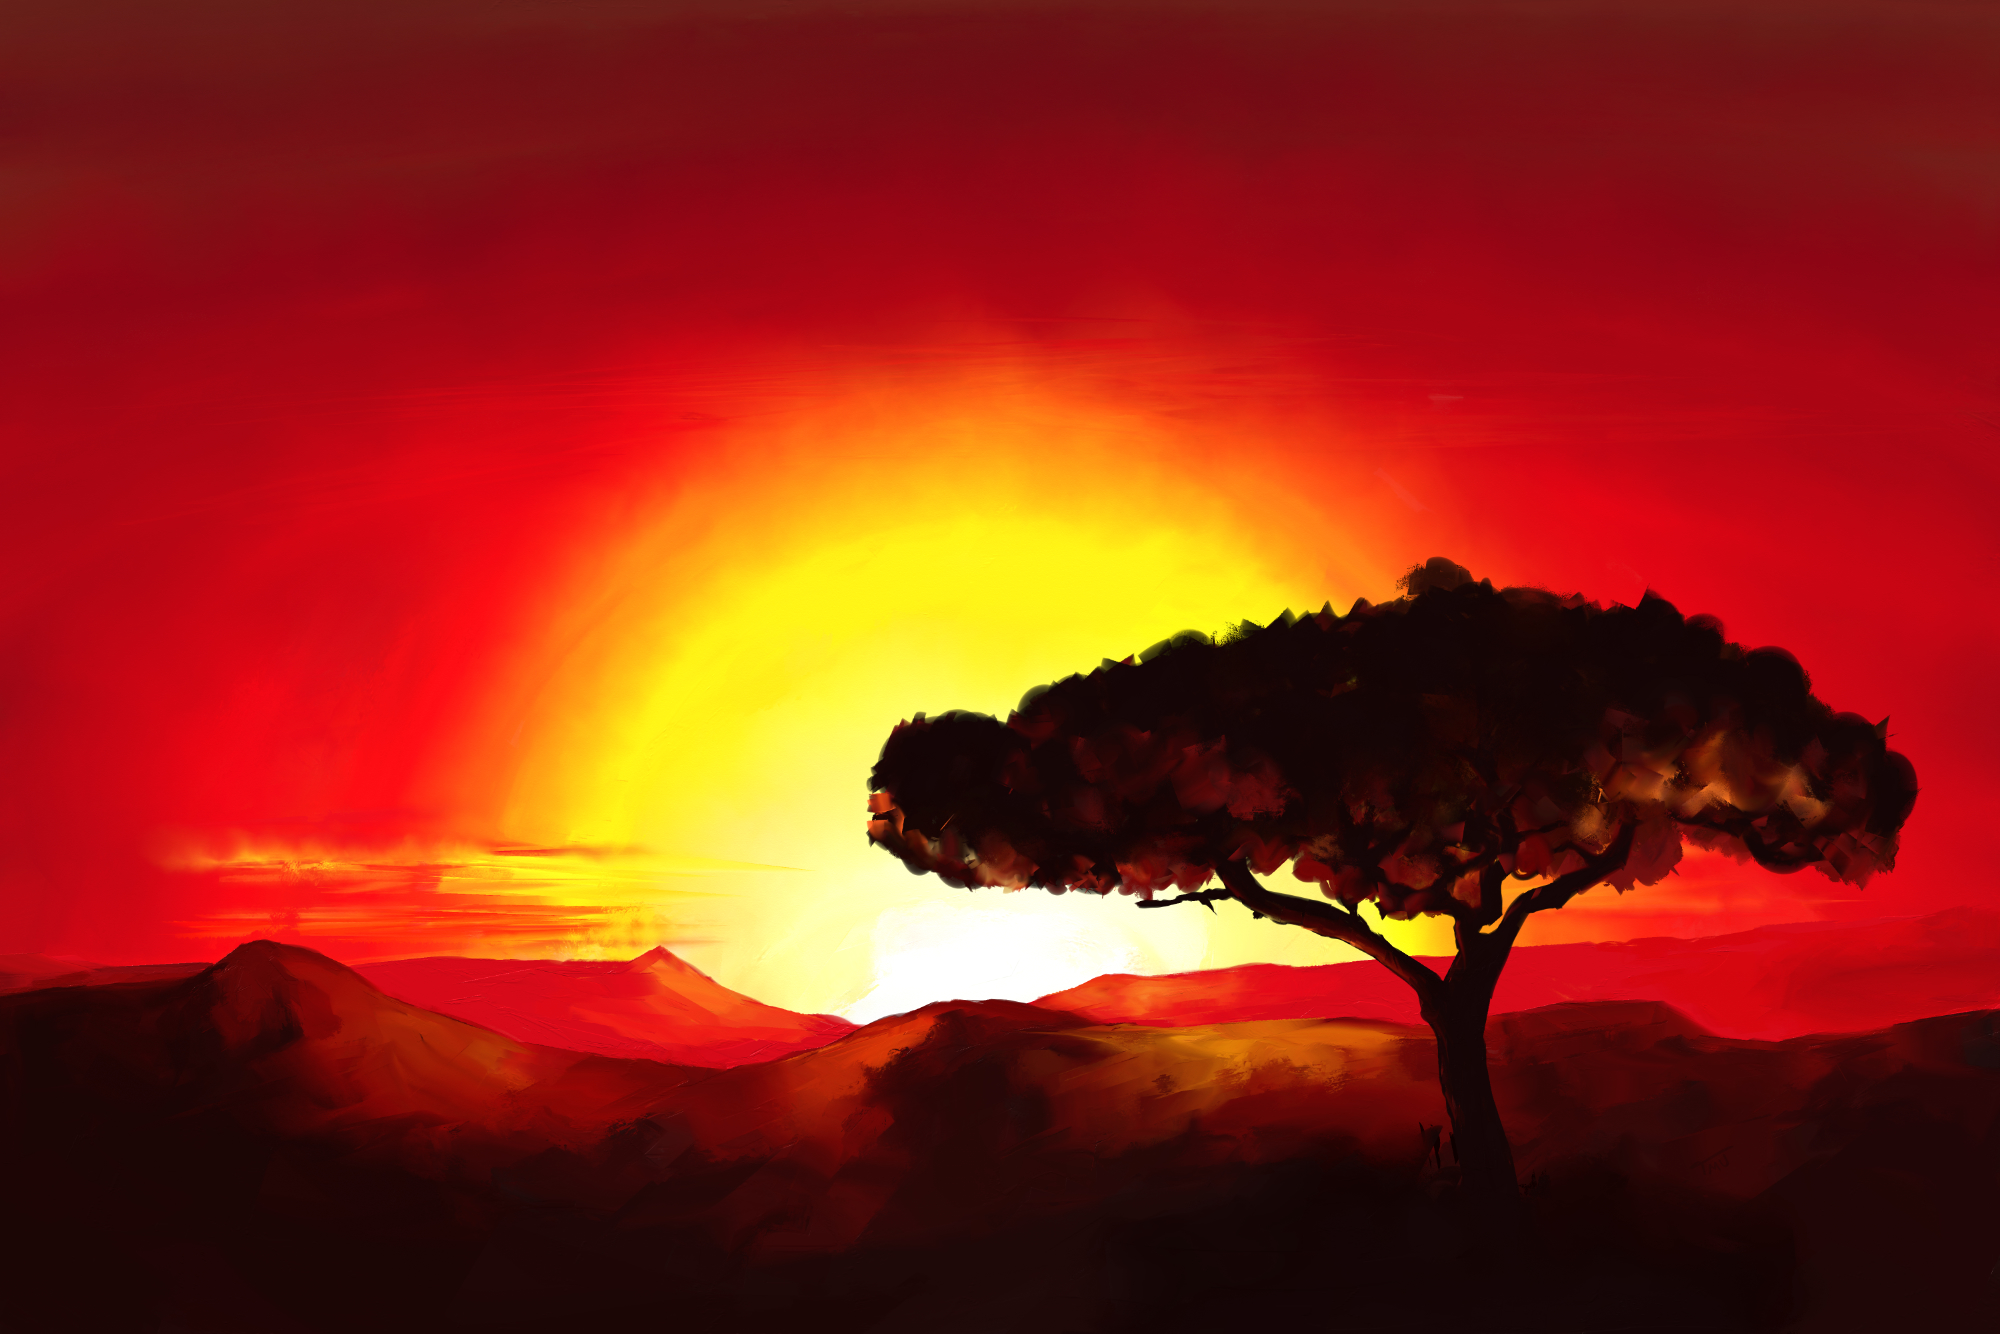 Digital acrylic painting of an African landscape with a typical tree at sunset